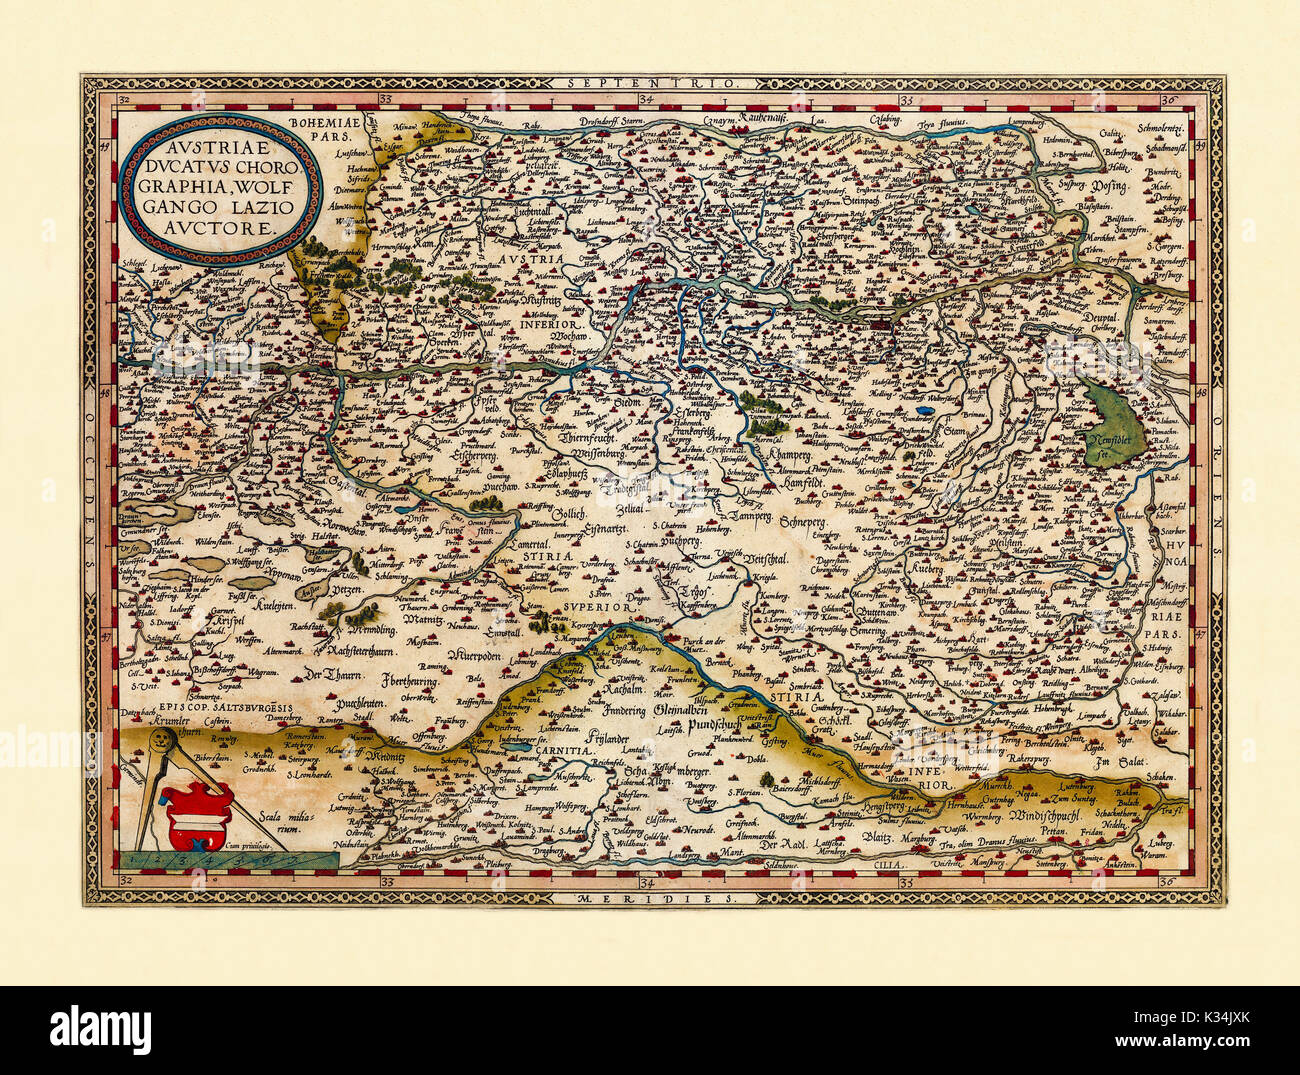 Old map of Austria. Excellent state of preservation realized in ancient style. All the graphic composition is inside a frame. By Ortelius, Theatrum Orbis Terrarum, Antwerp, 1570 - Stock Image